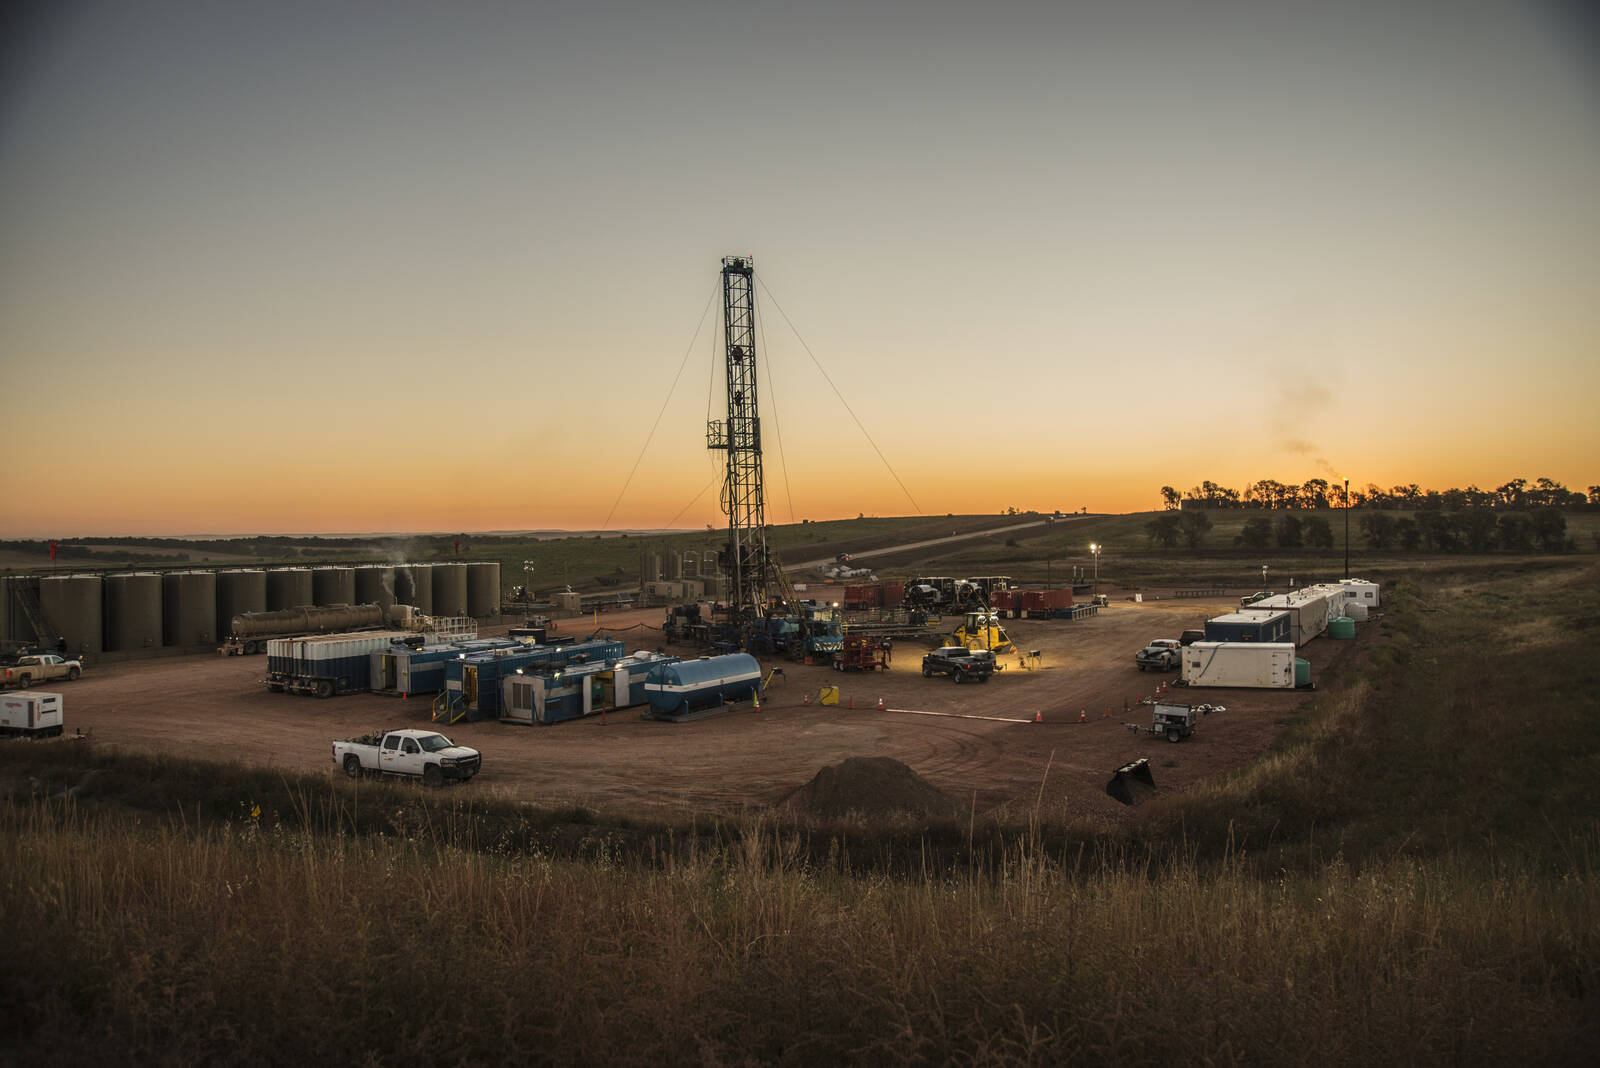 Activity at a Bakken oil well pad south of Watford City, North Dakota. Credit: William Campbell/Corbis via Getty Images